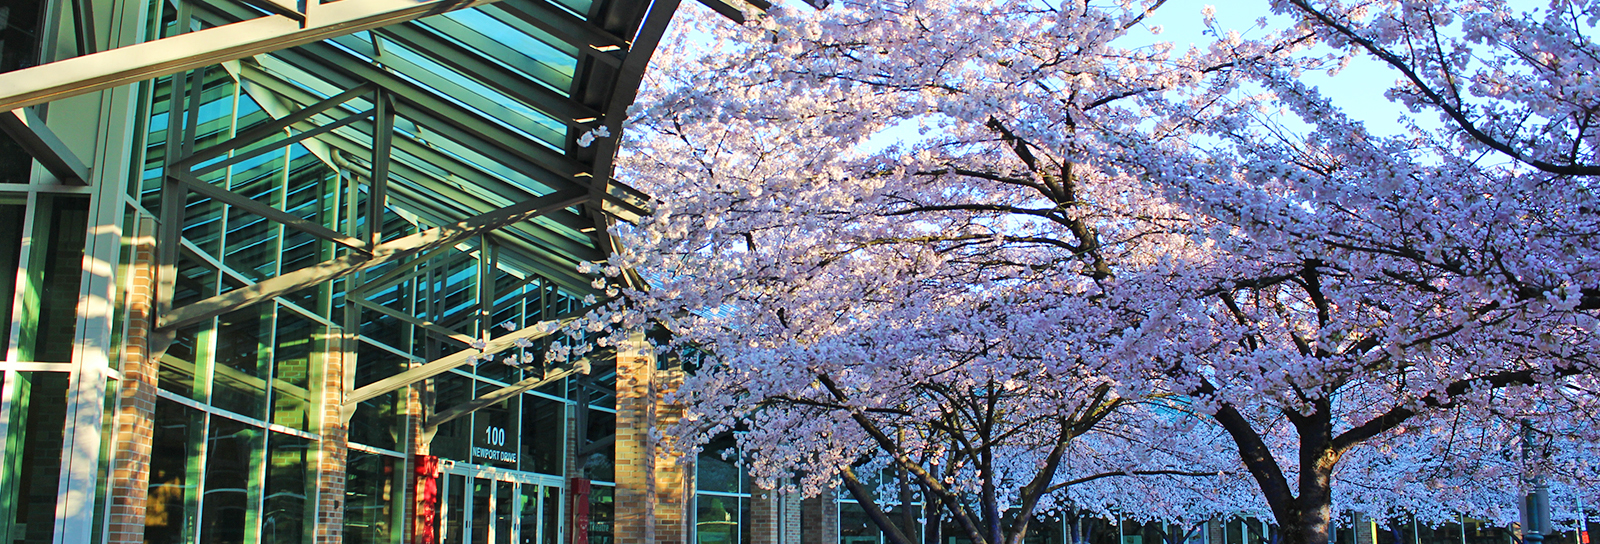 Cherry blossoms in front of City Hall